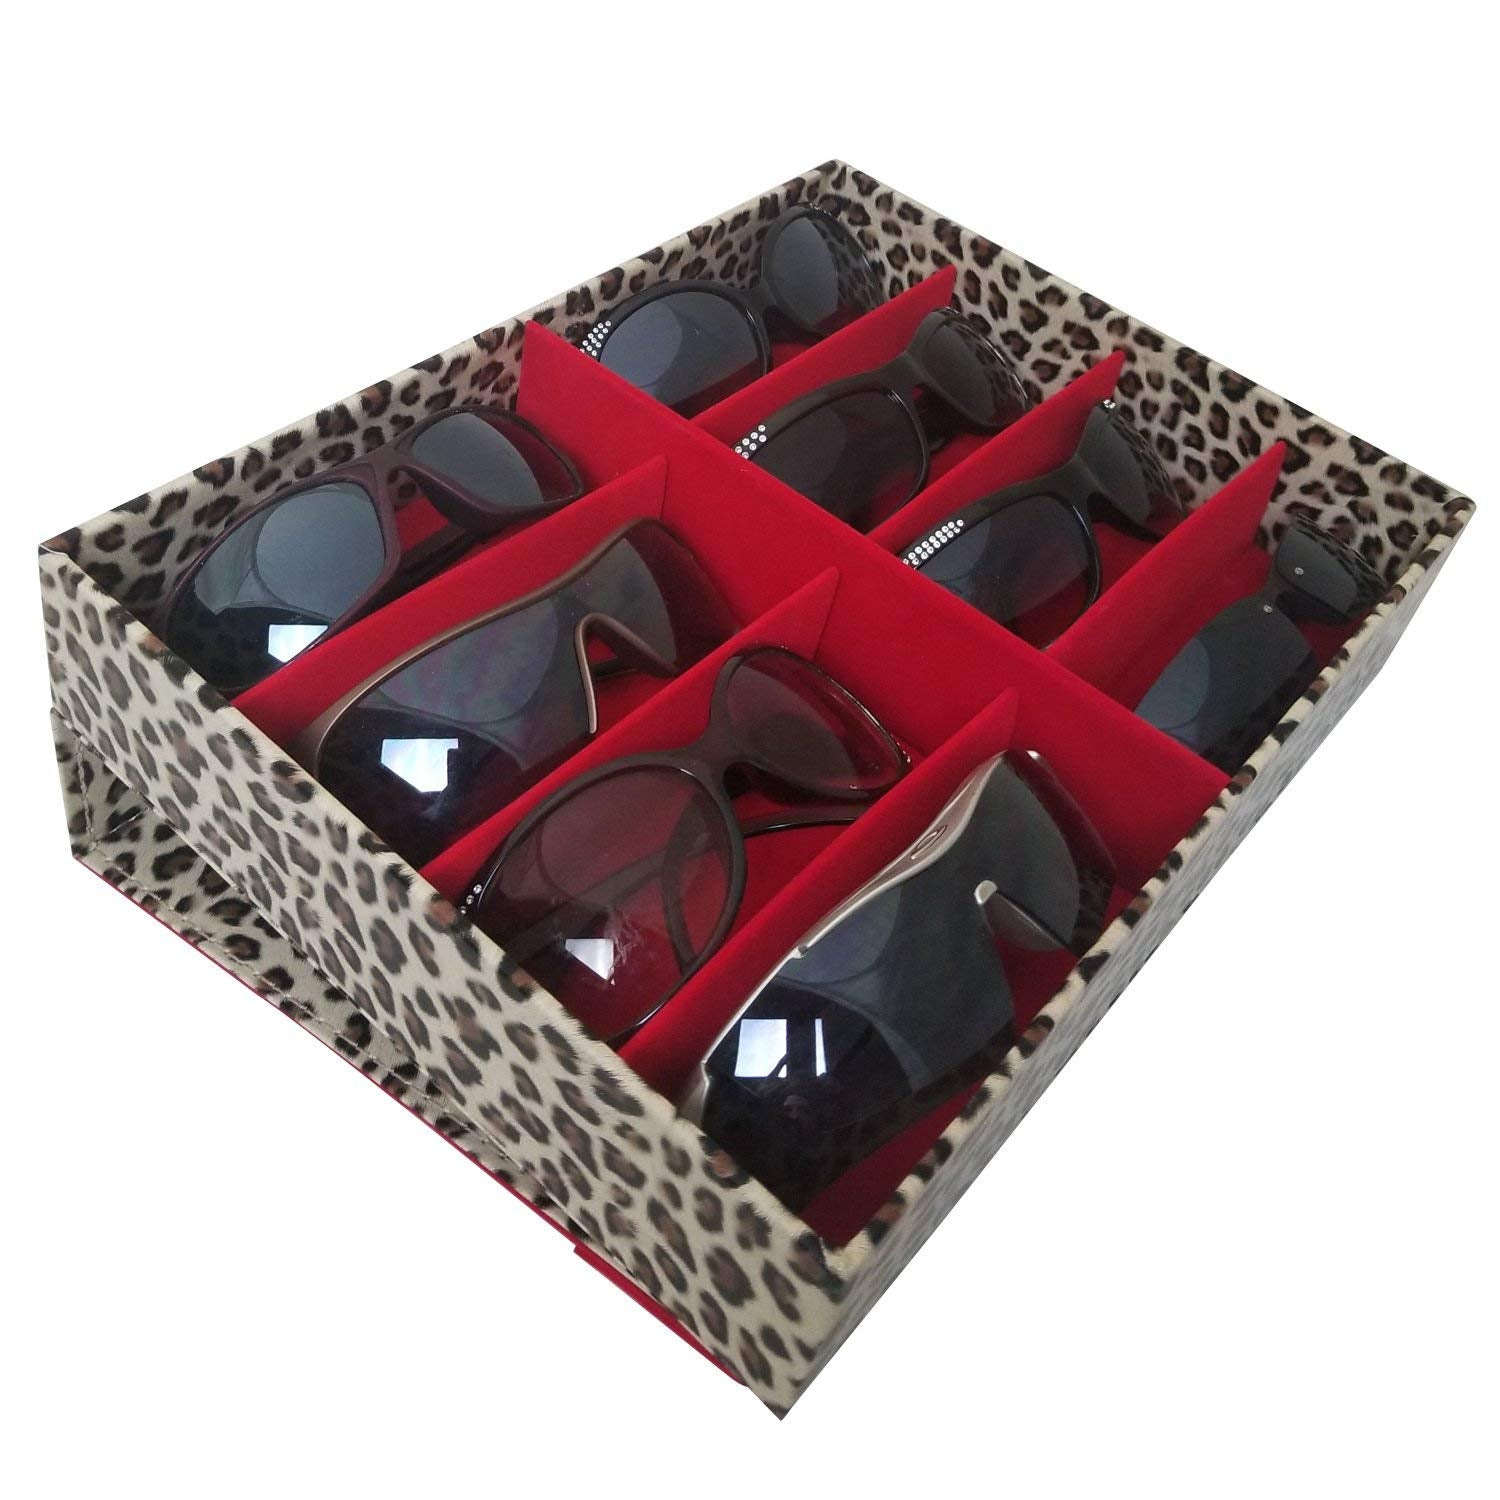 "#TR-1608BC-LD Leopard Pattern  Eyewear Tray For Large Sunglasses. 8 Frames, 12 3/4"" X 9 3/4"" X 2 1/4""H 